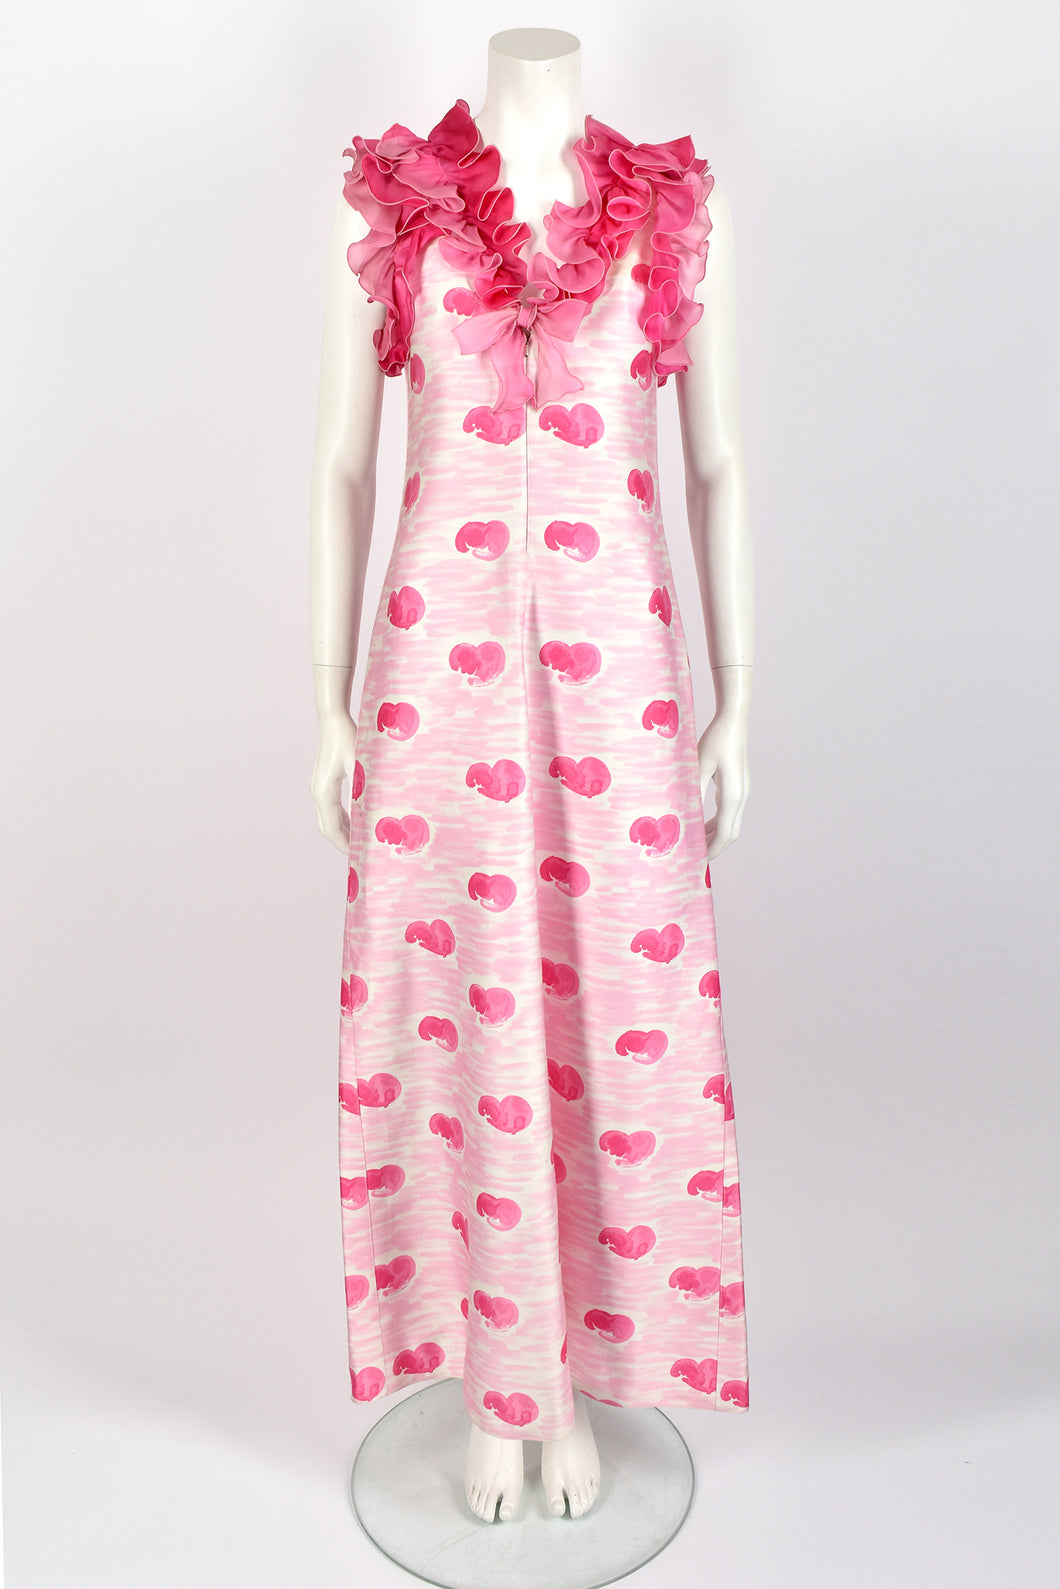 ANDRE COURREGES 60s frilled dress / S-M